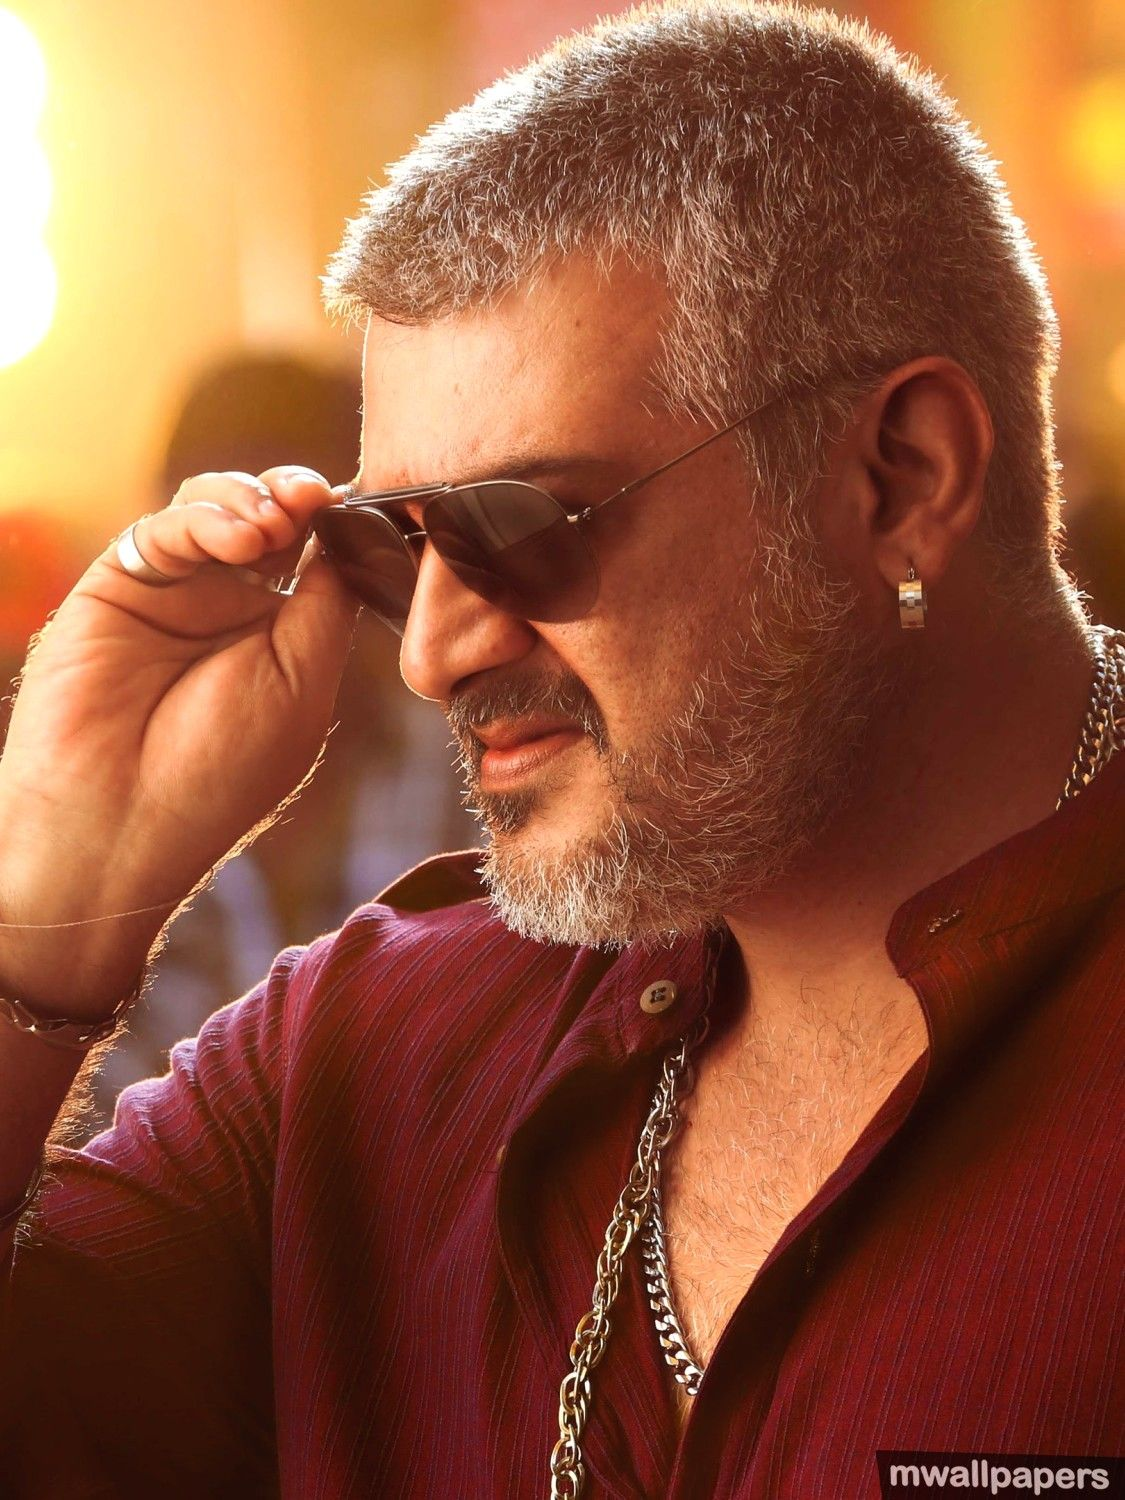 Ajith Kumar Best Hd Photos 1080p 10035 Ajithkumar Thala